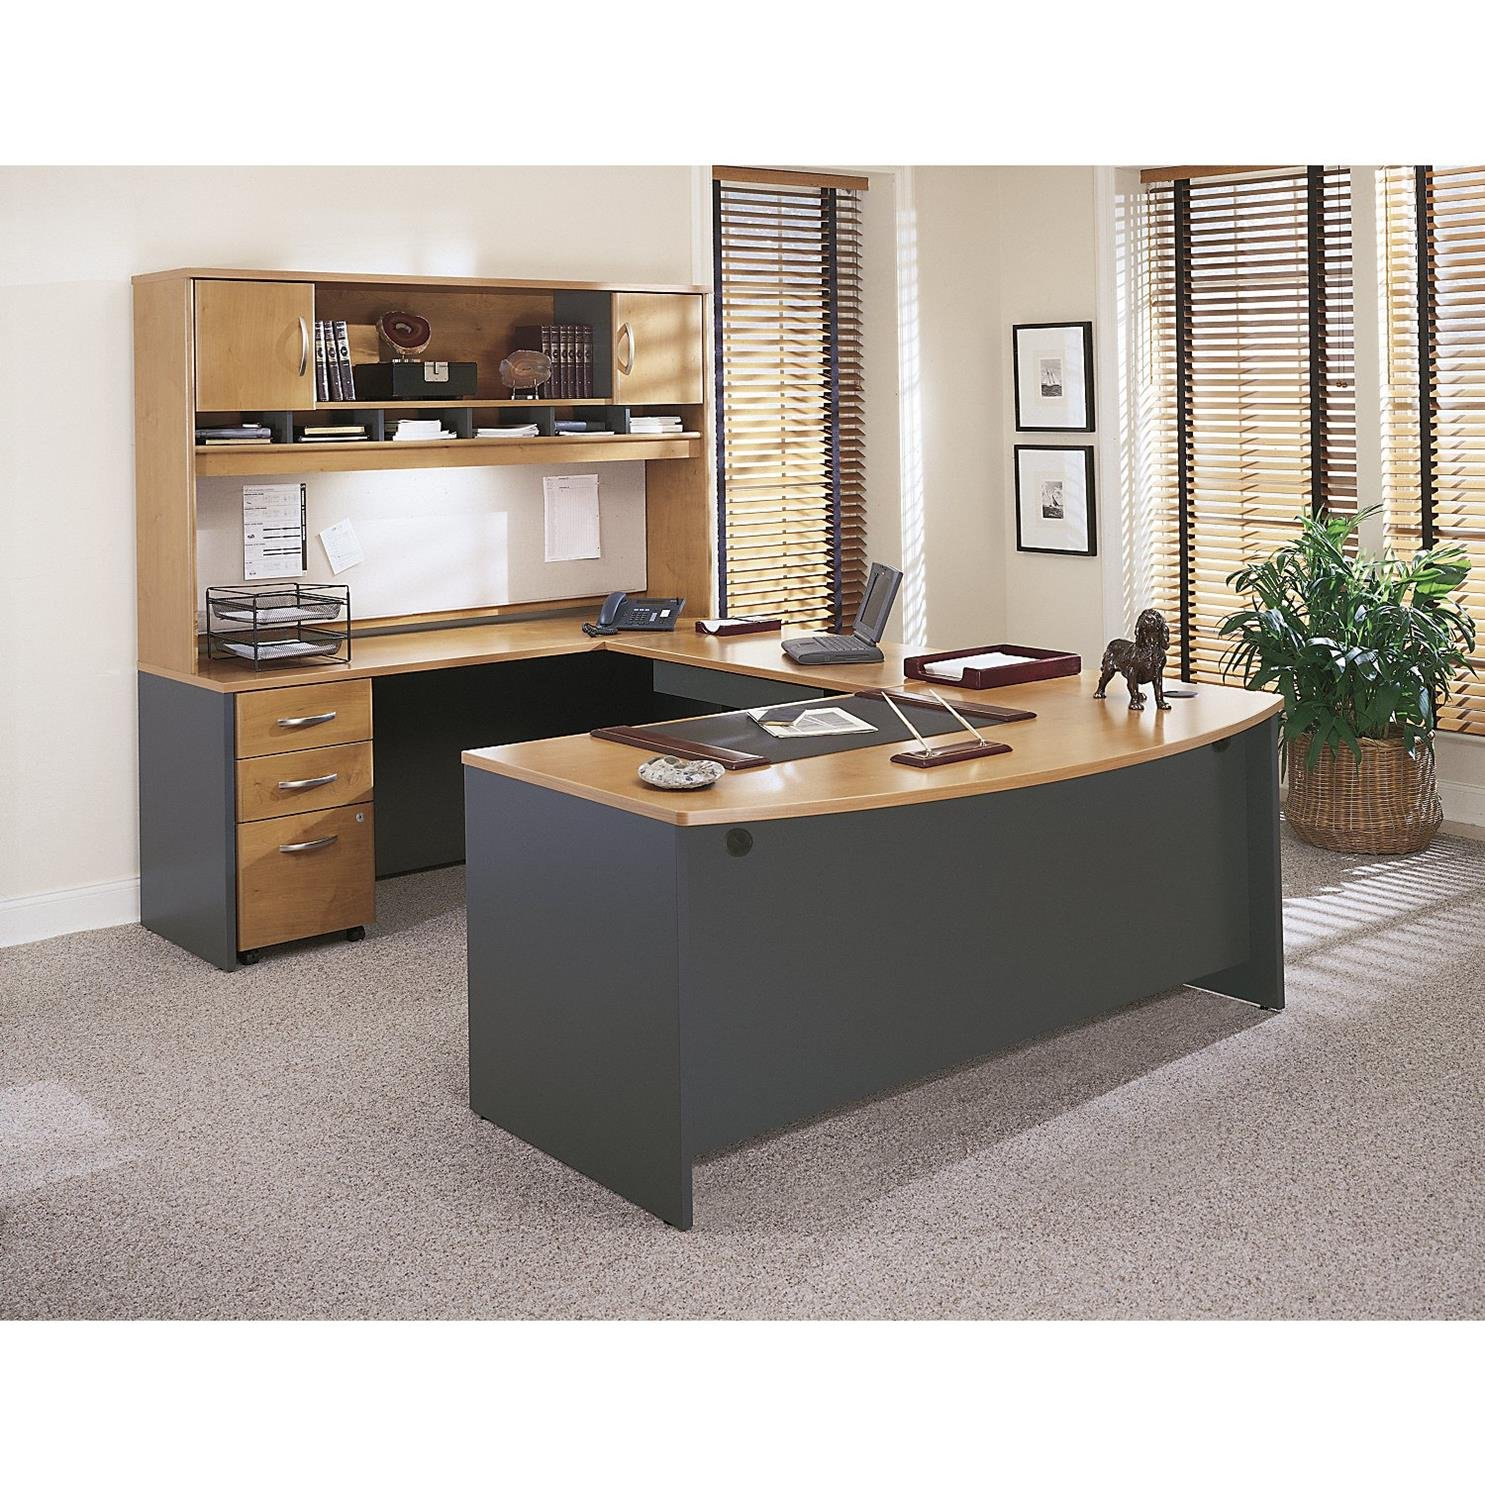 connect hutch officeconnectachievecollectionlshapedcomputerdeskwithfiledrawerandoptionalhutch office desk collection file furniture master with cfm drawer achieve computer optional l shaped bush product hayneedle and